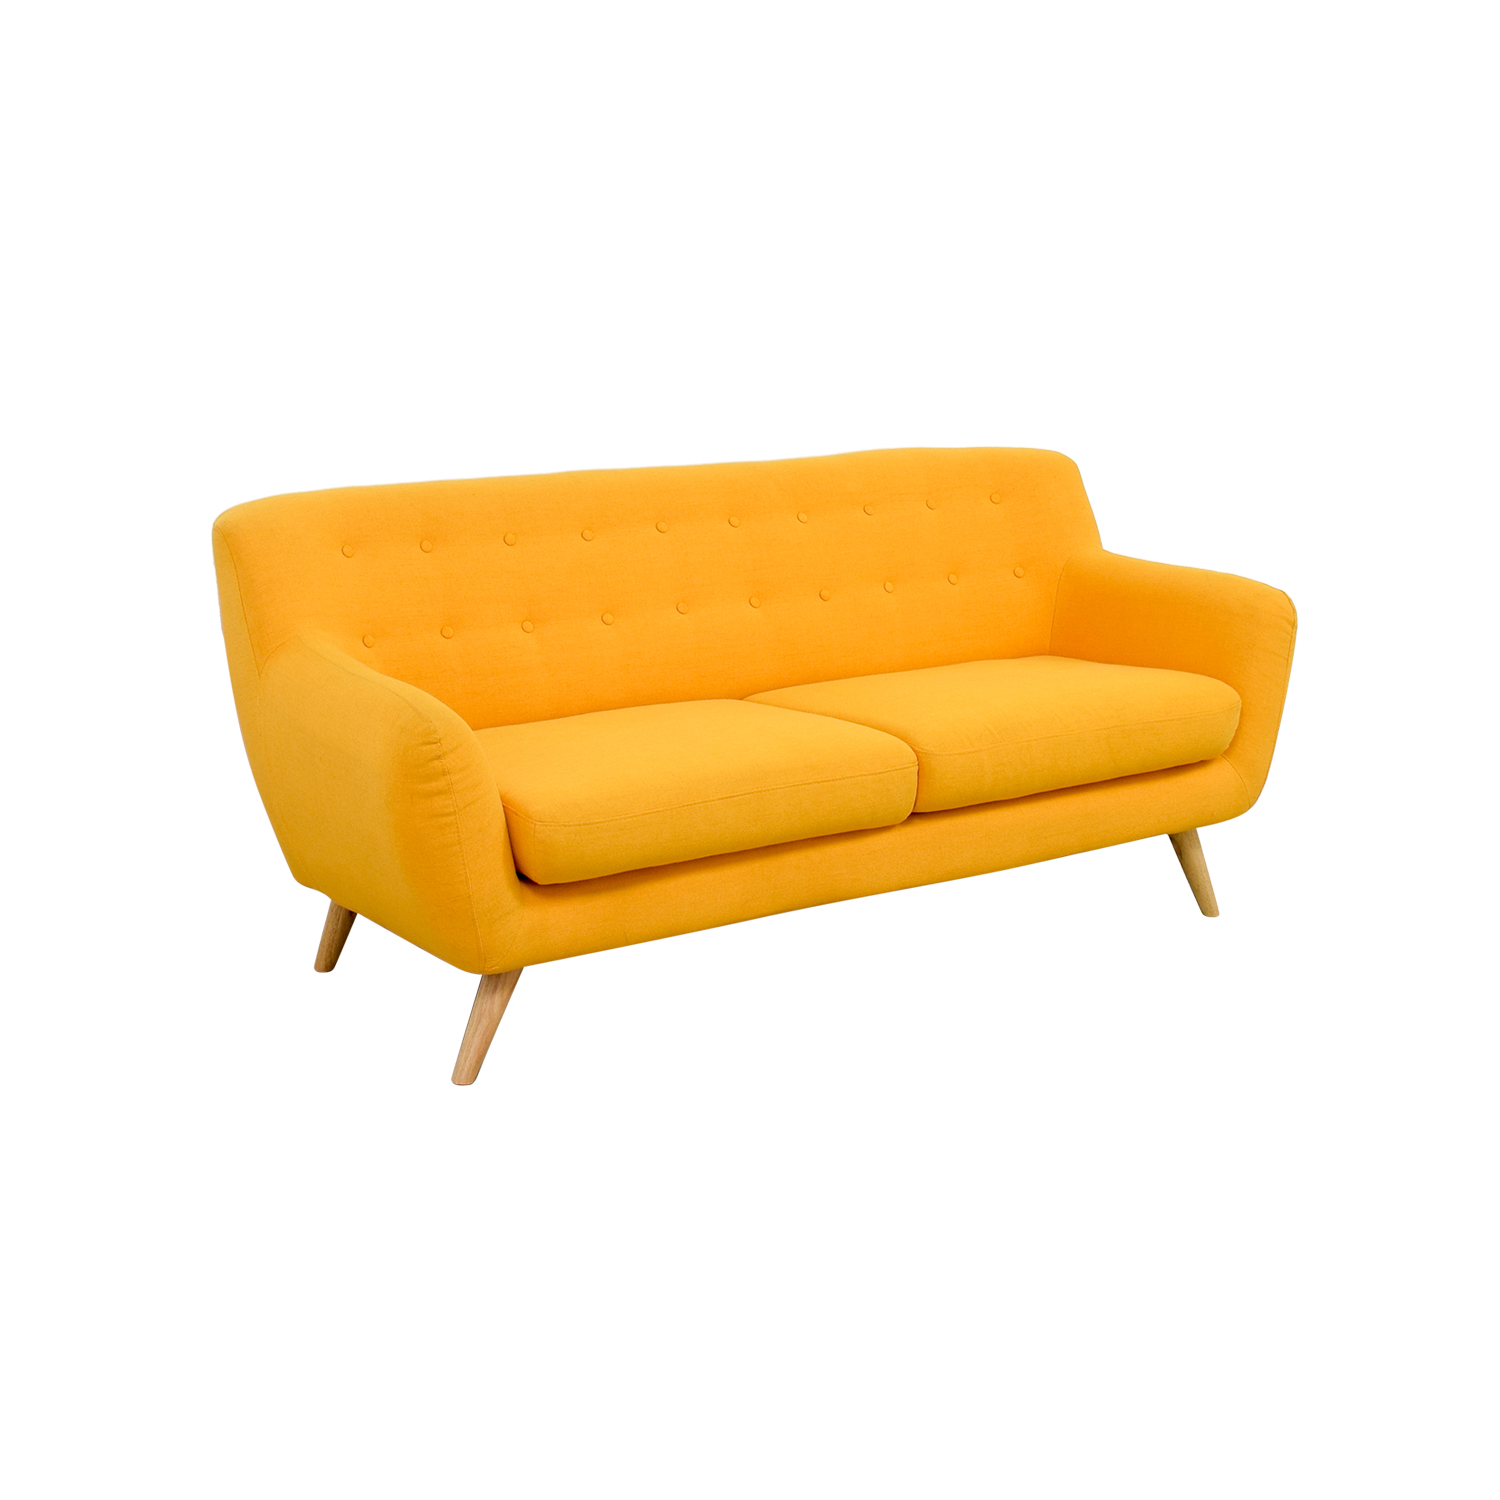 42 Off Mustard Yellow Sofa Sofas